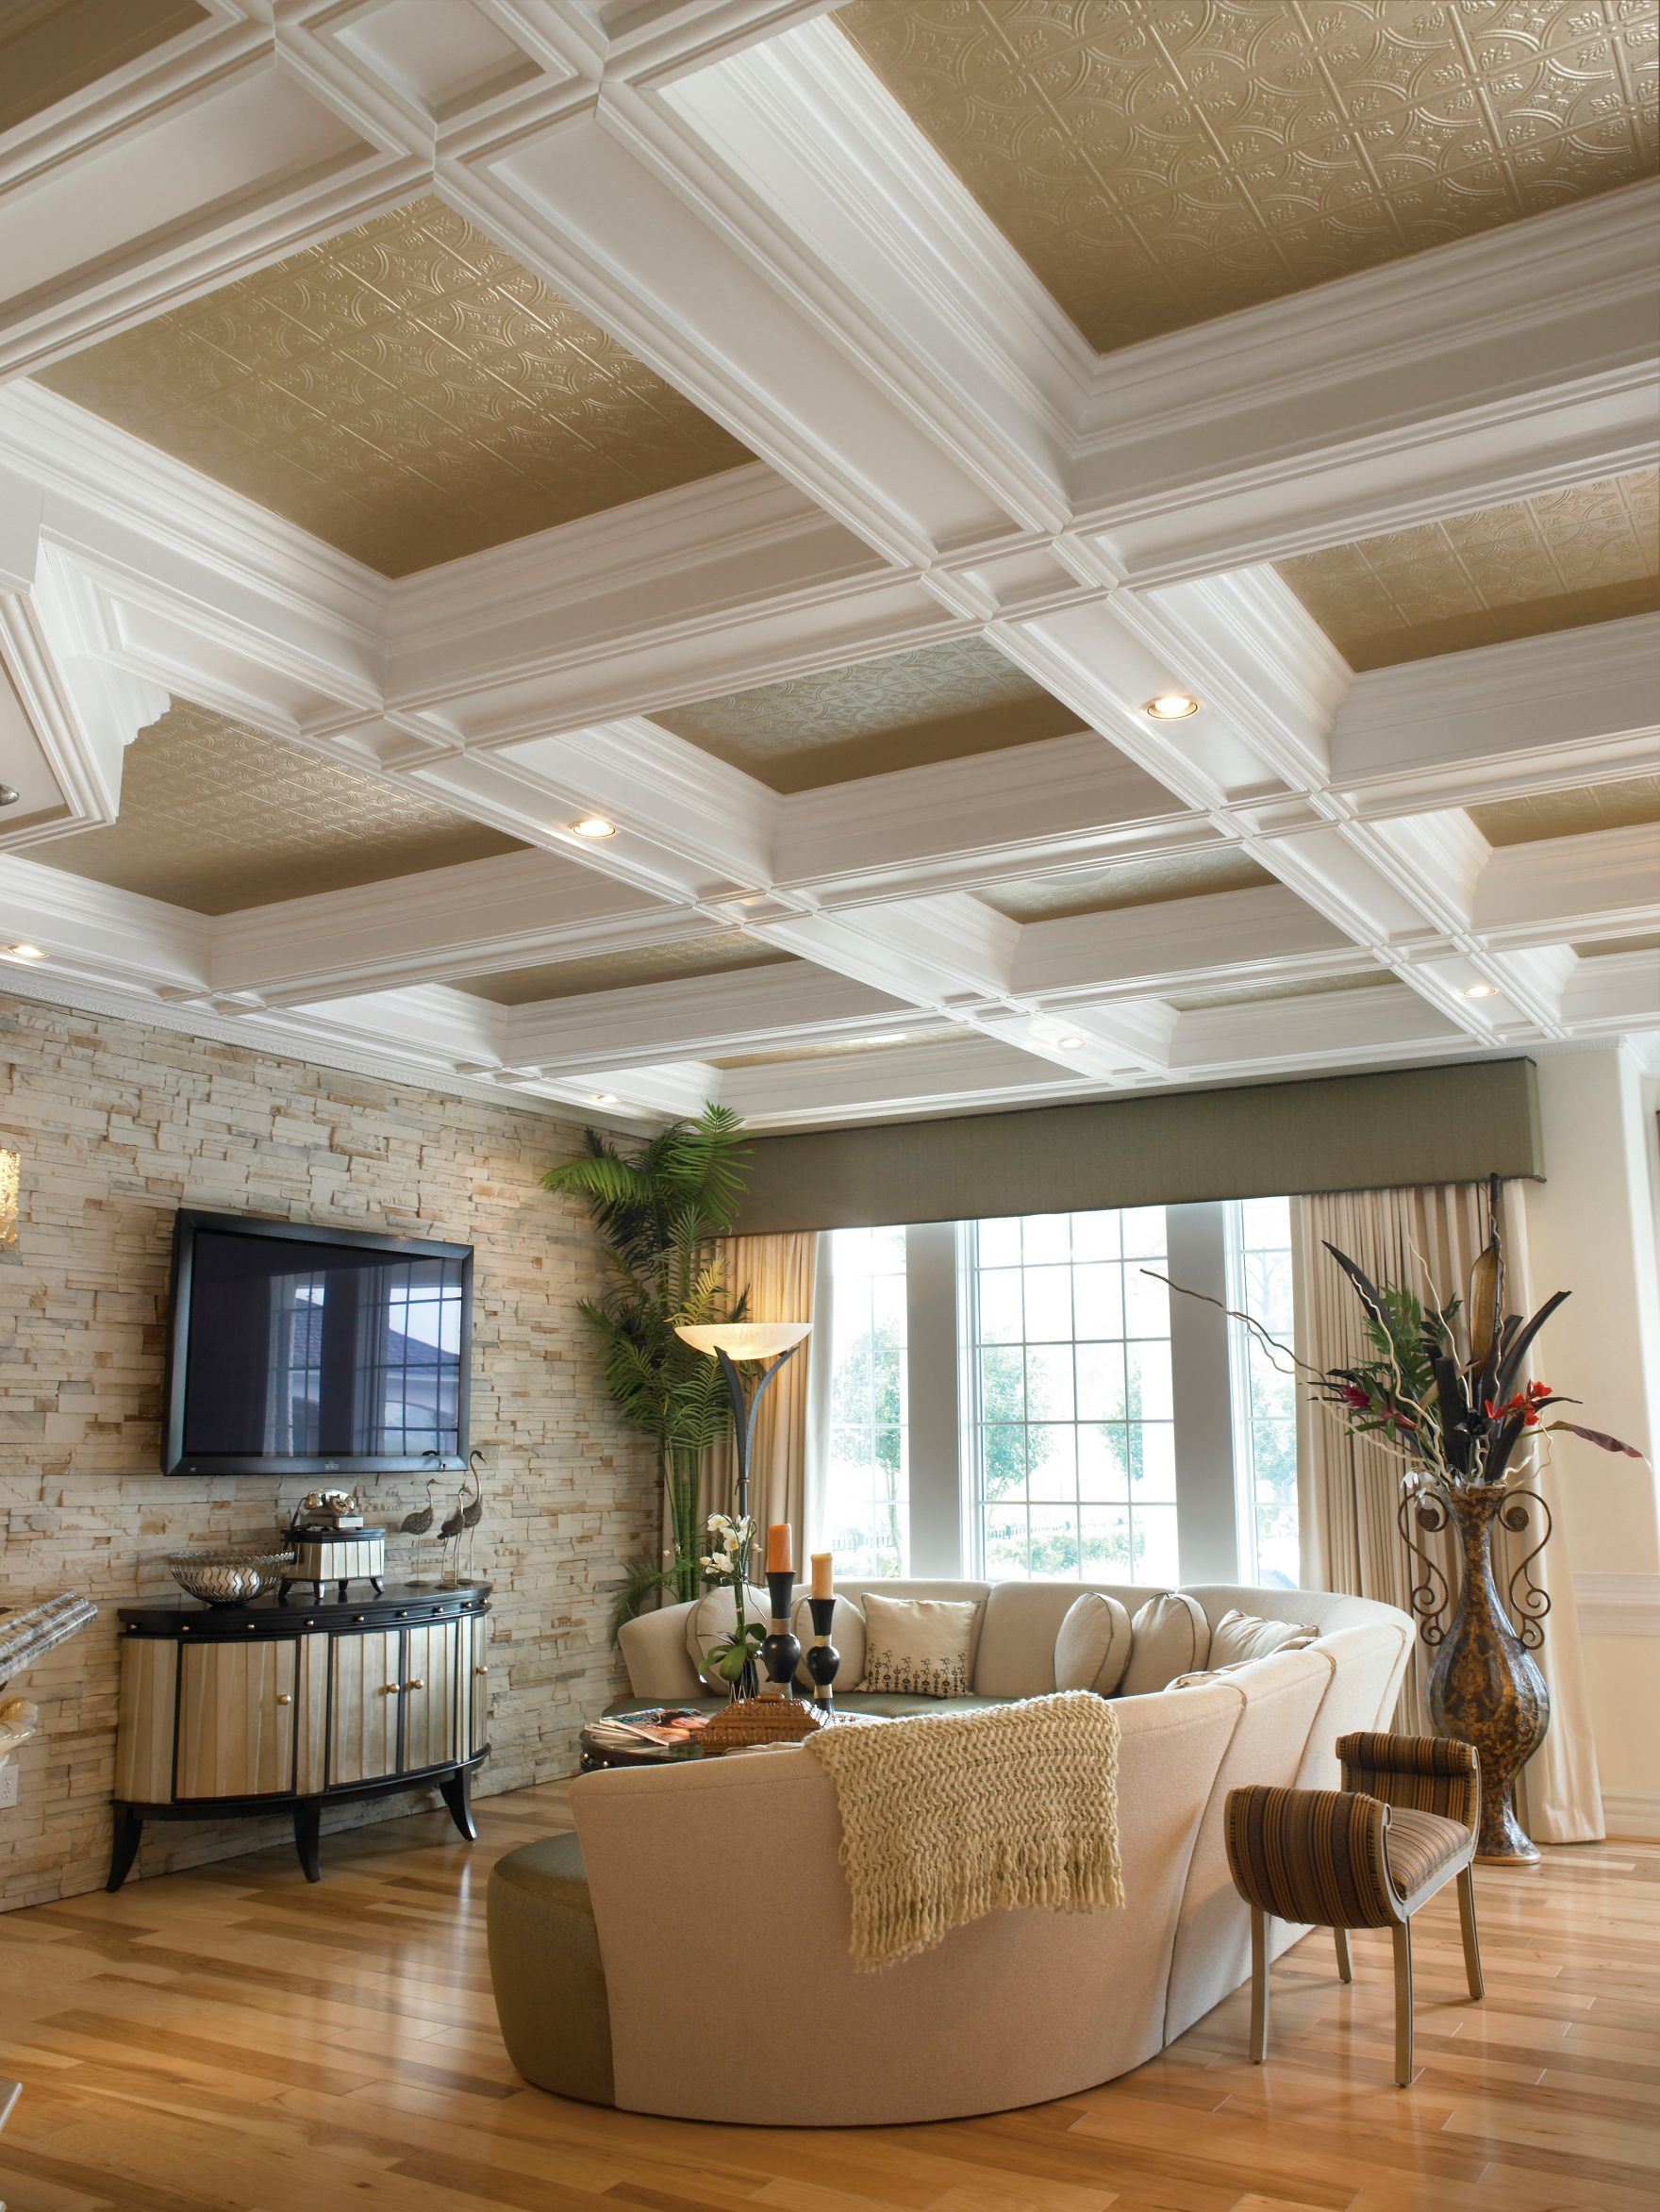 Remodelando la casa ceilings dont have to be boring ceiling tile on coffered ceiling dailygadgetfo Images